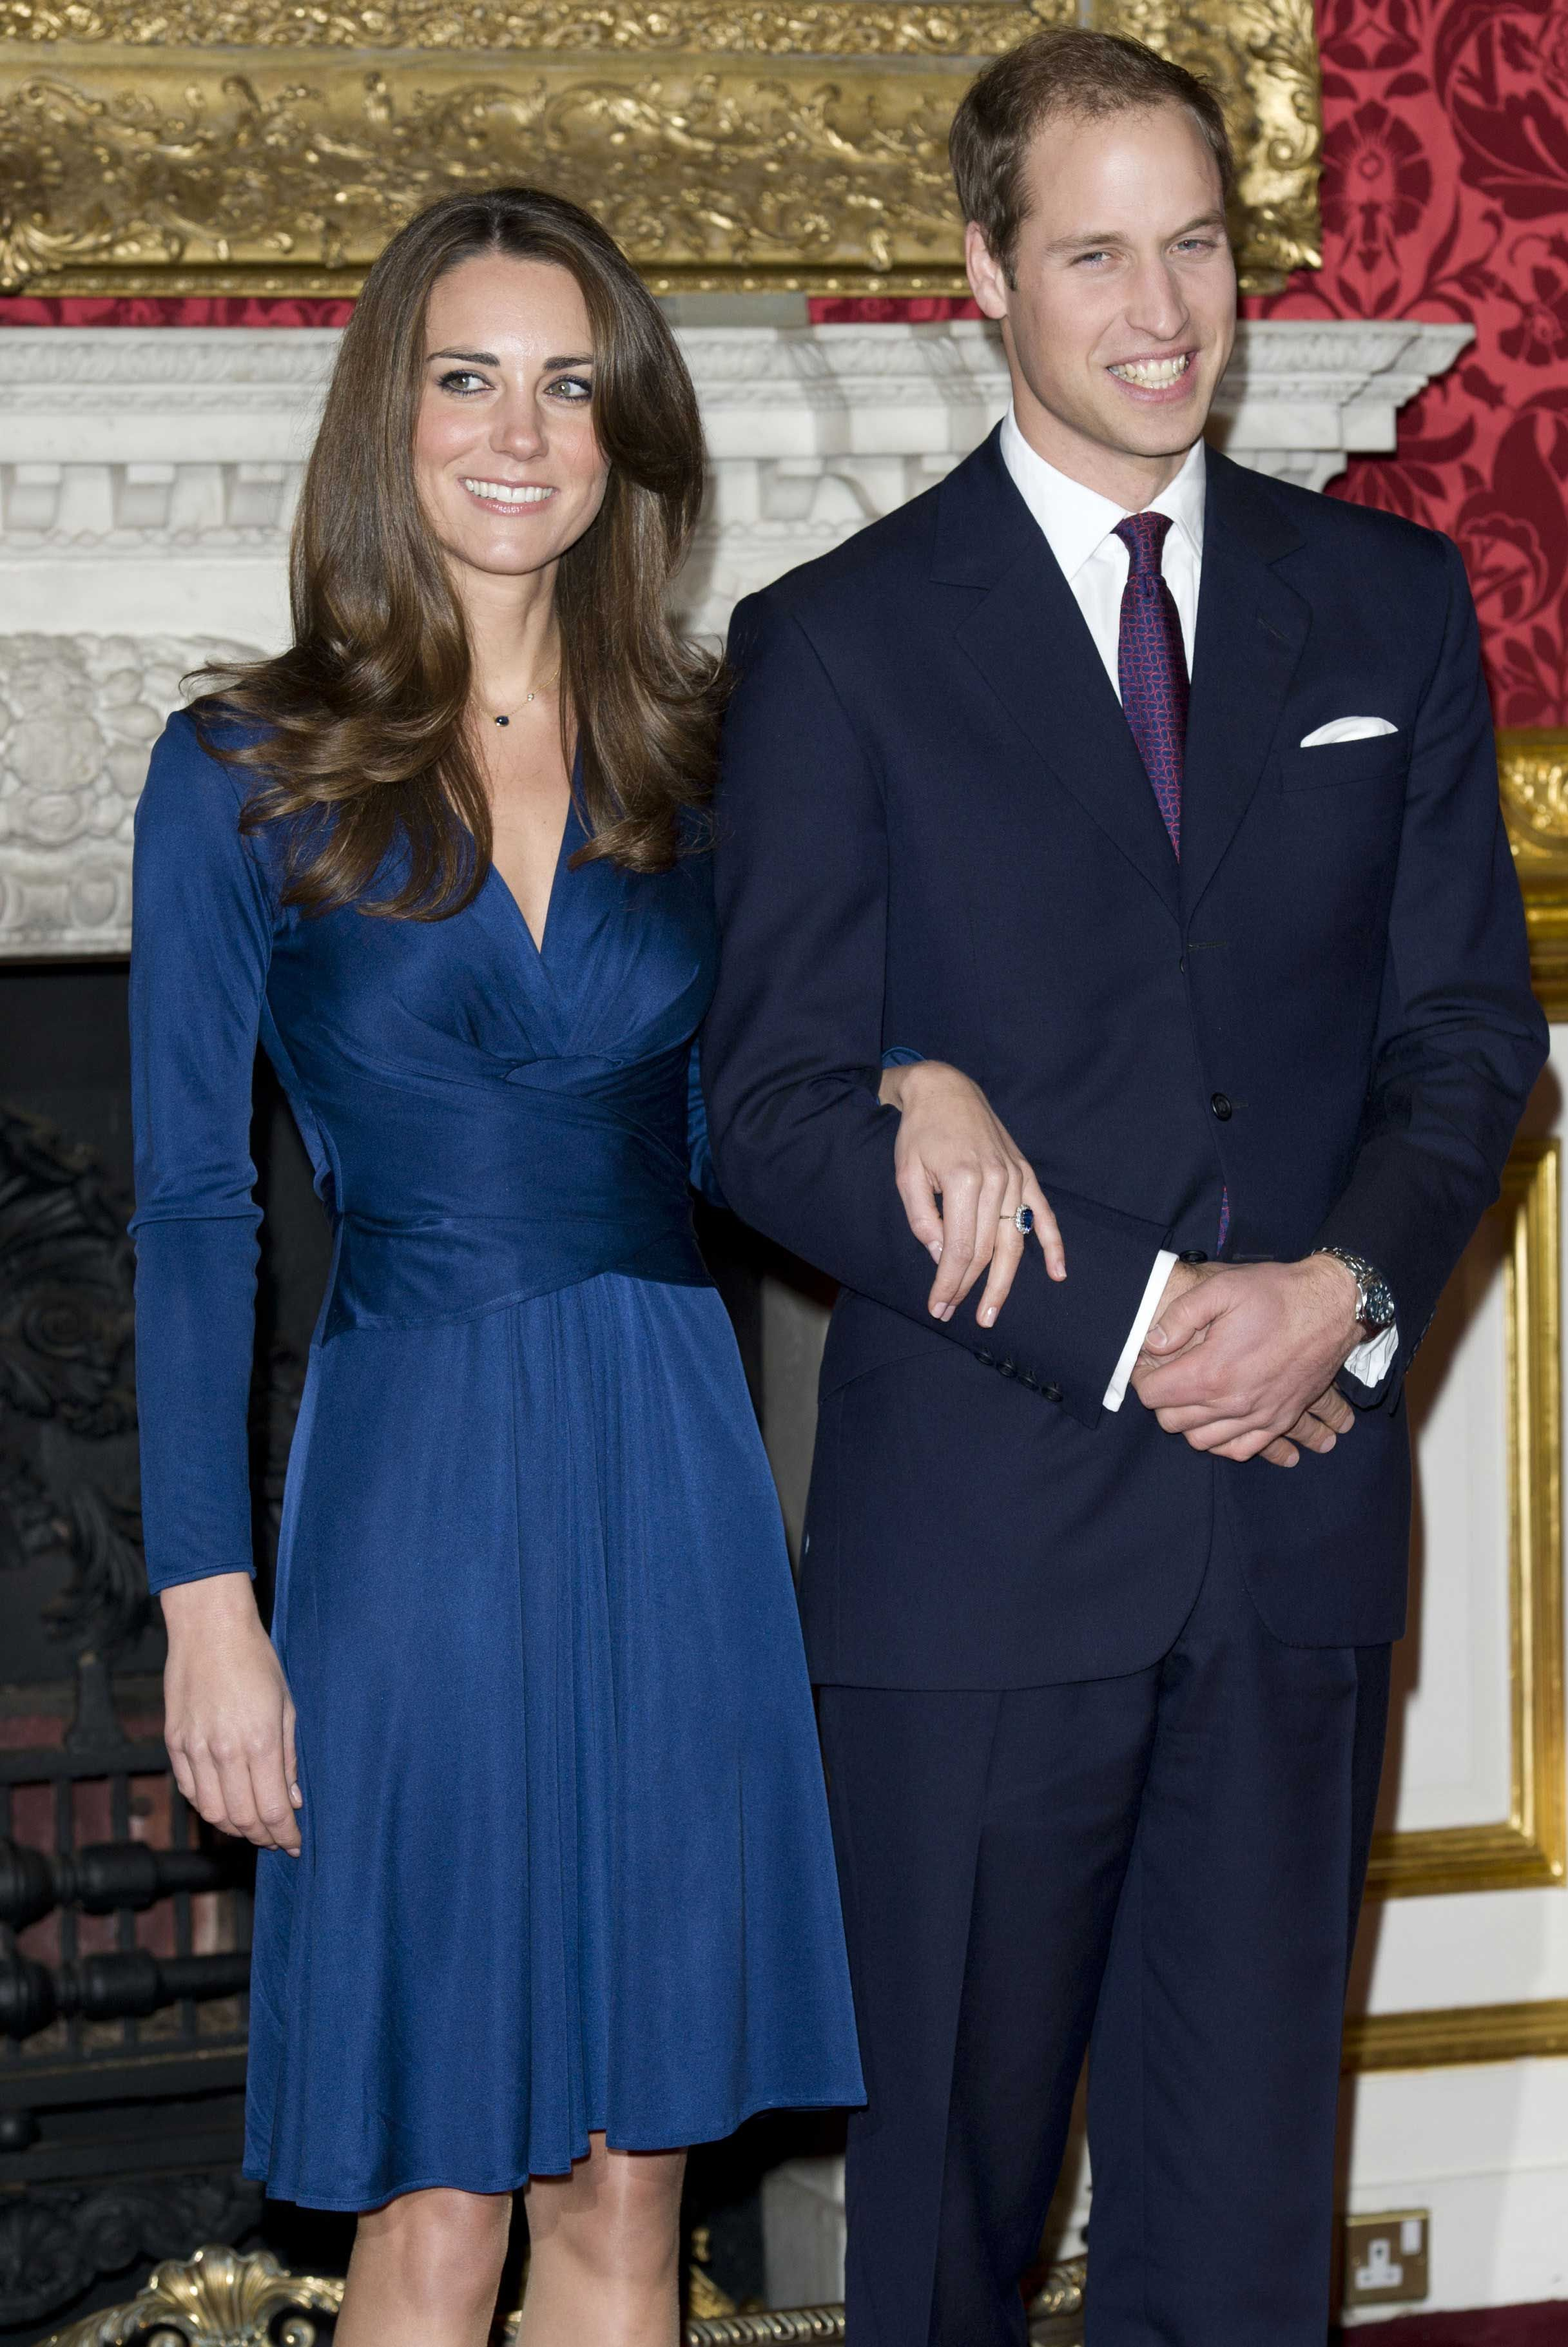 39c67d1d2ca4b Oh my God I just LOVE that royal blue dress.[Kate Middleton & Prince William  announcing their engagement]